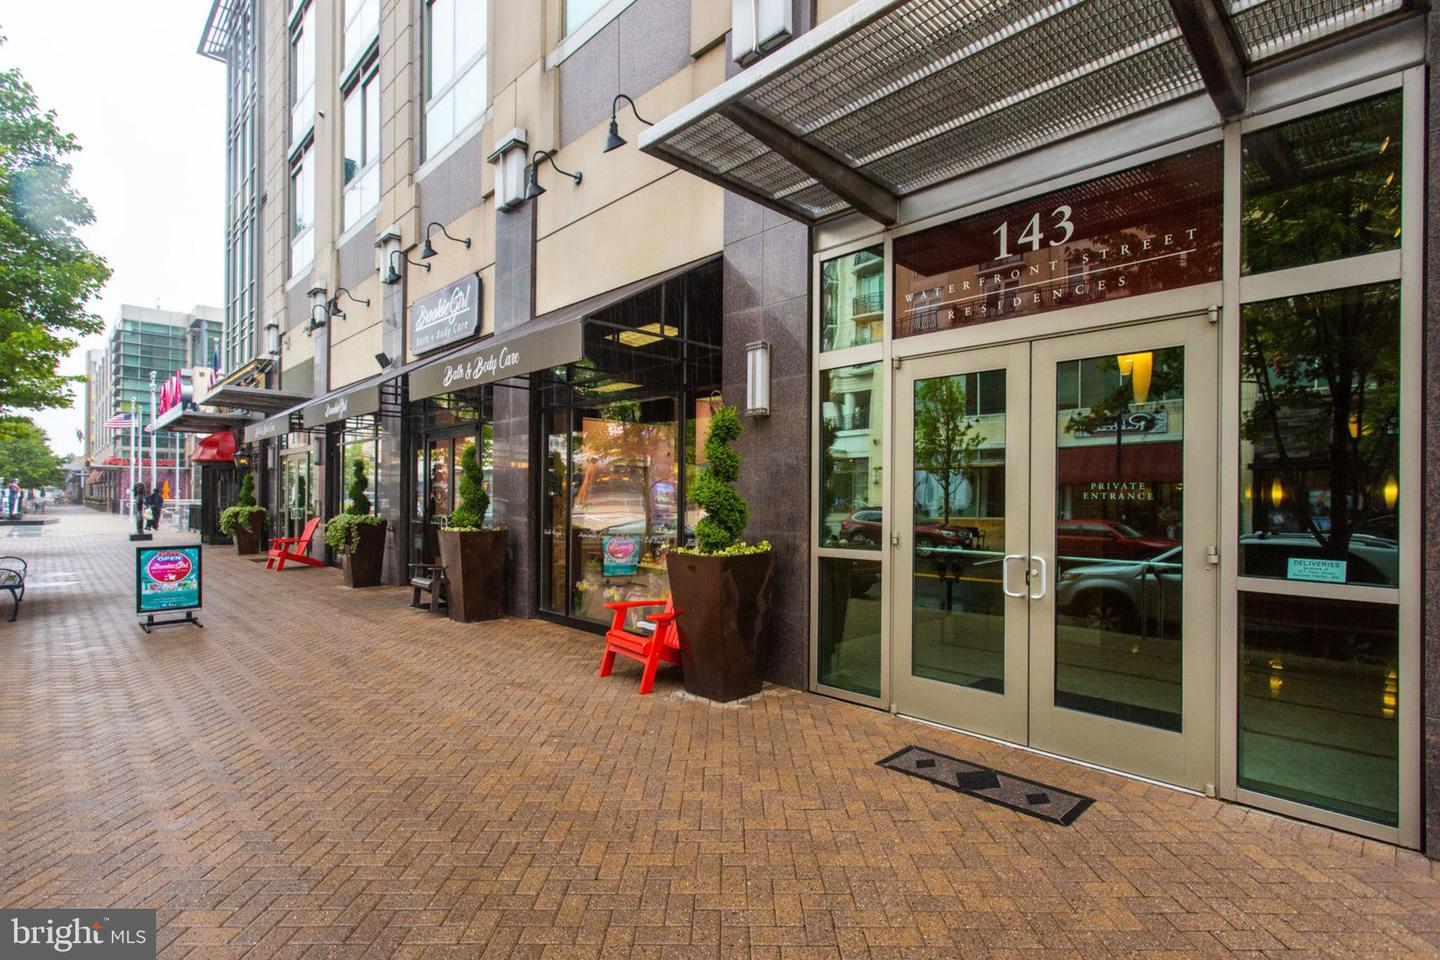 condominiums for Sale at 143 Waterfront St #204 143 Waterfront St #204 National Harbor, Maryland 20745 United States